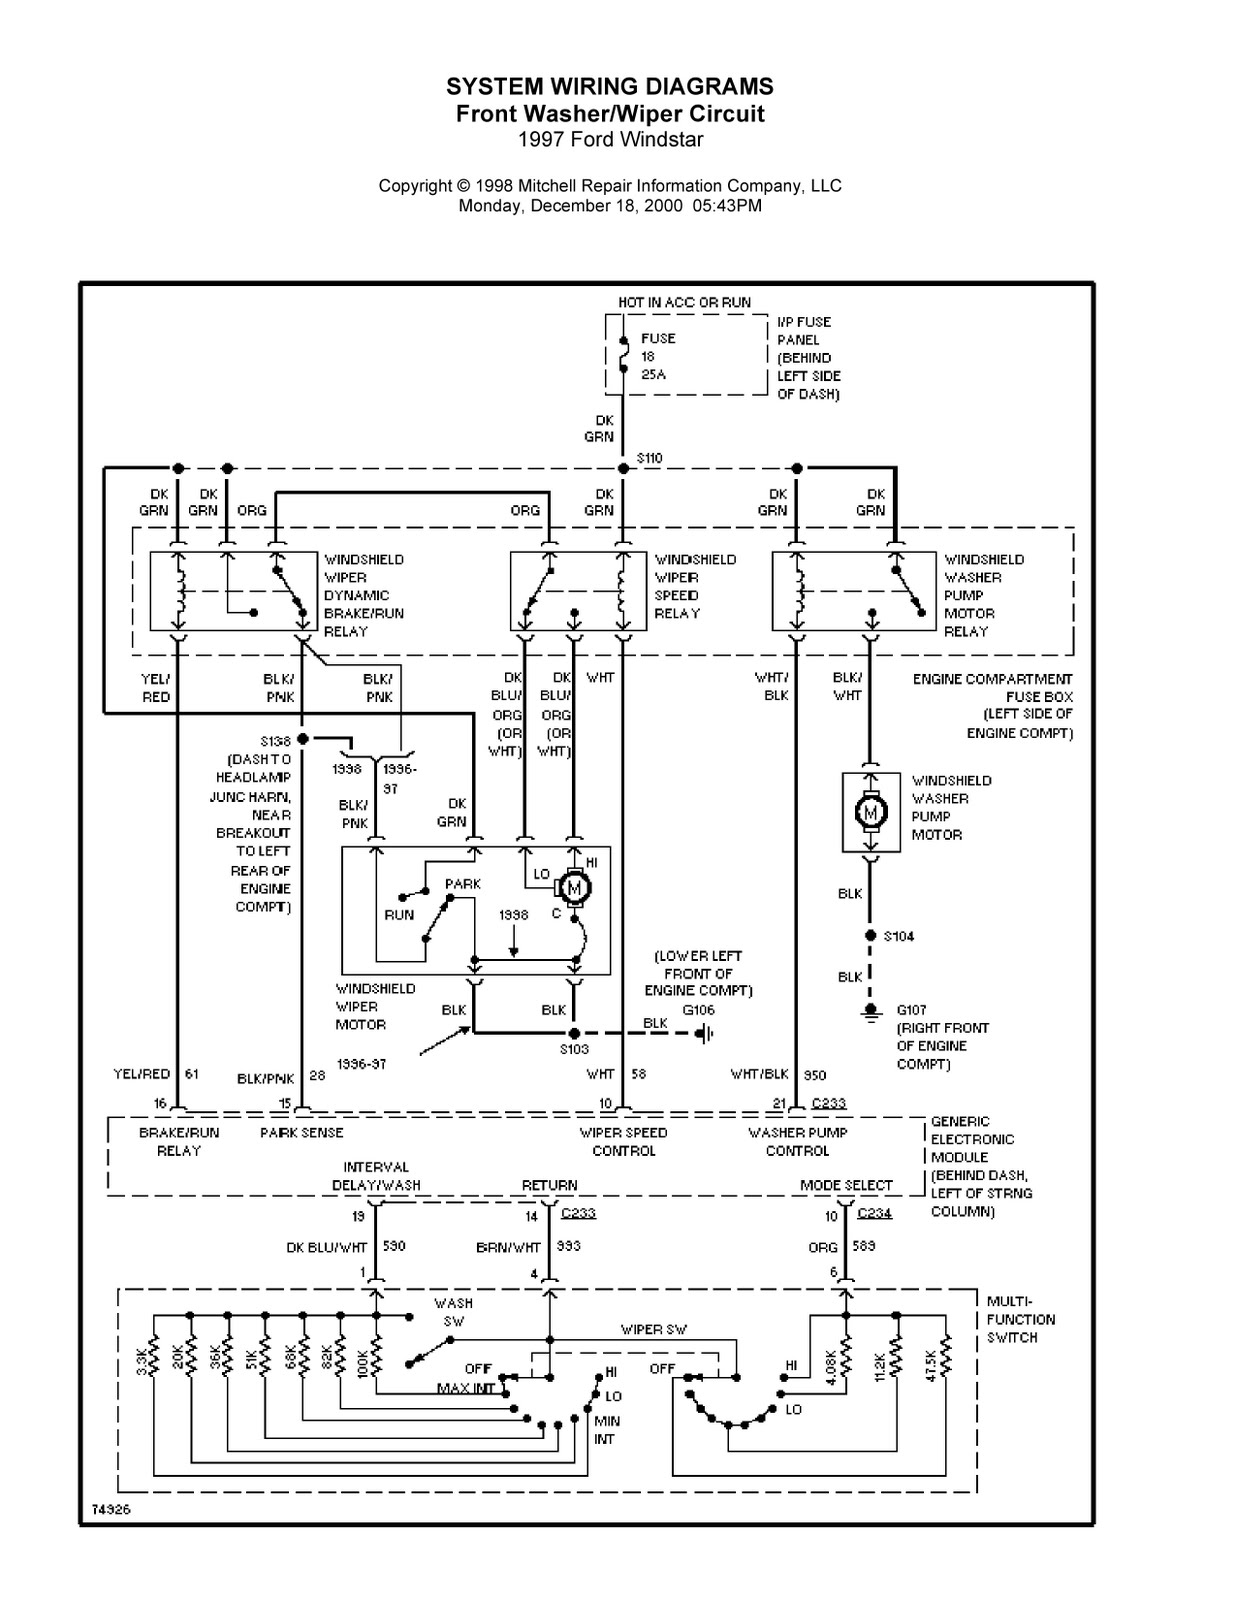 Diagram 2001 Ford Windstar Headlight Wiring Diagram Full Version Hd Quality Wiring Diagram Xdiagramh Anticheopinioni It